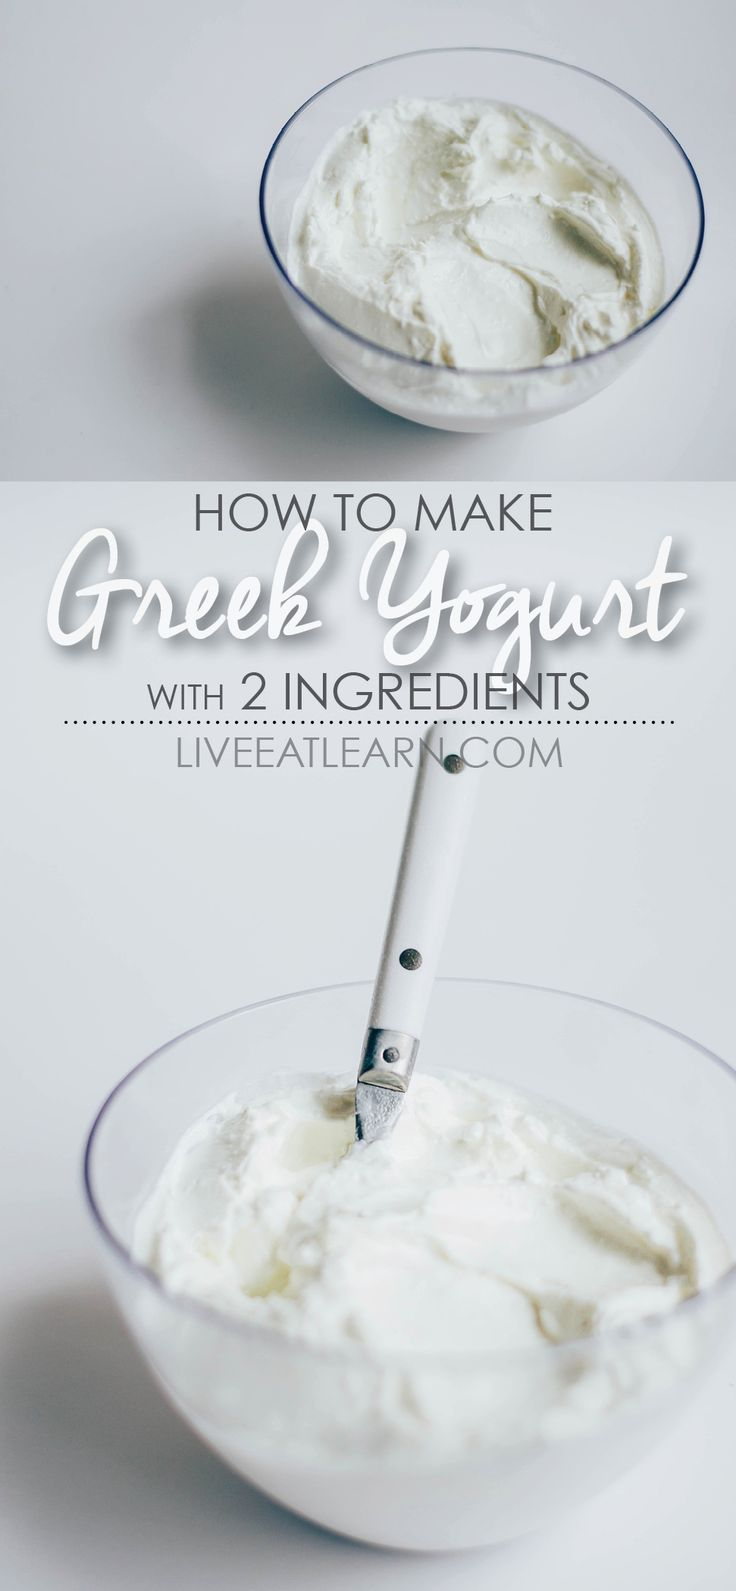 How To Make Greek Yogurt Recipe With Images Make Greek Yogurt Yogurt Yogurt Recipes